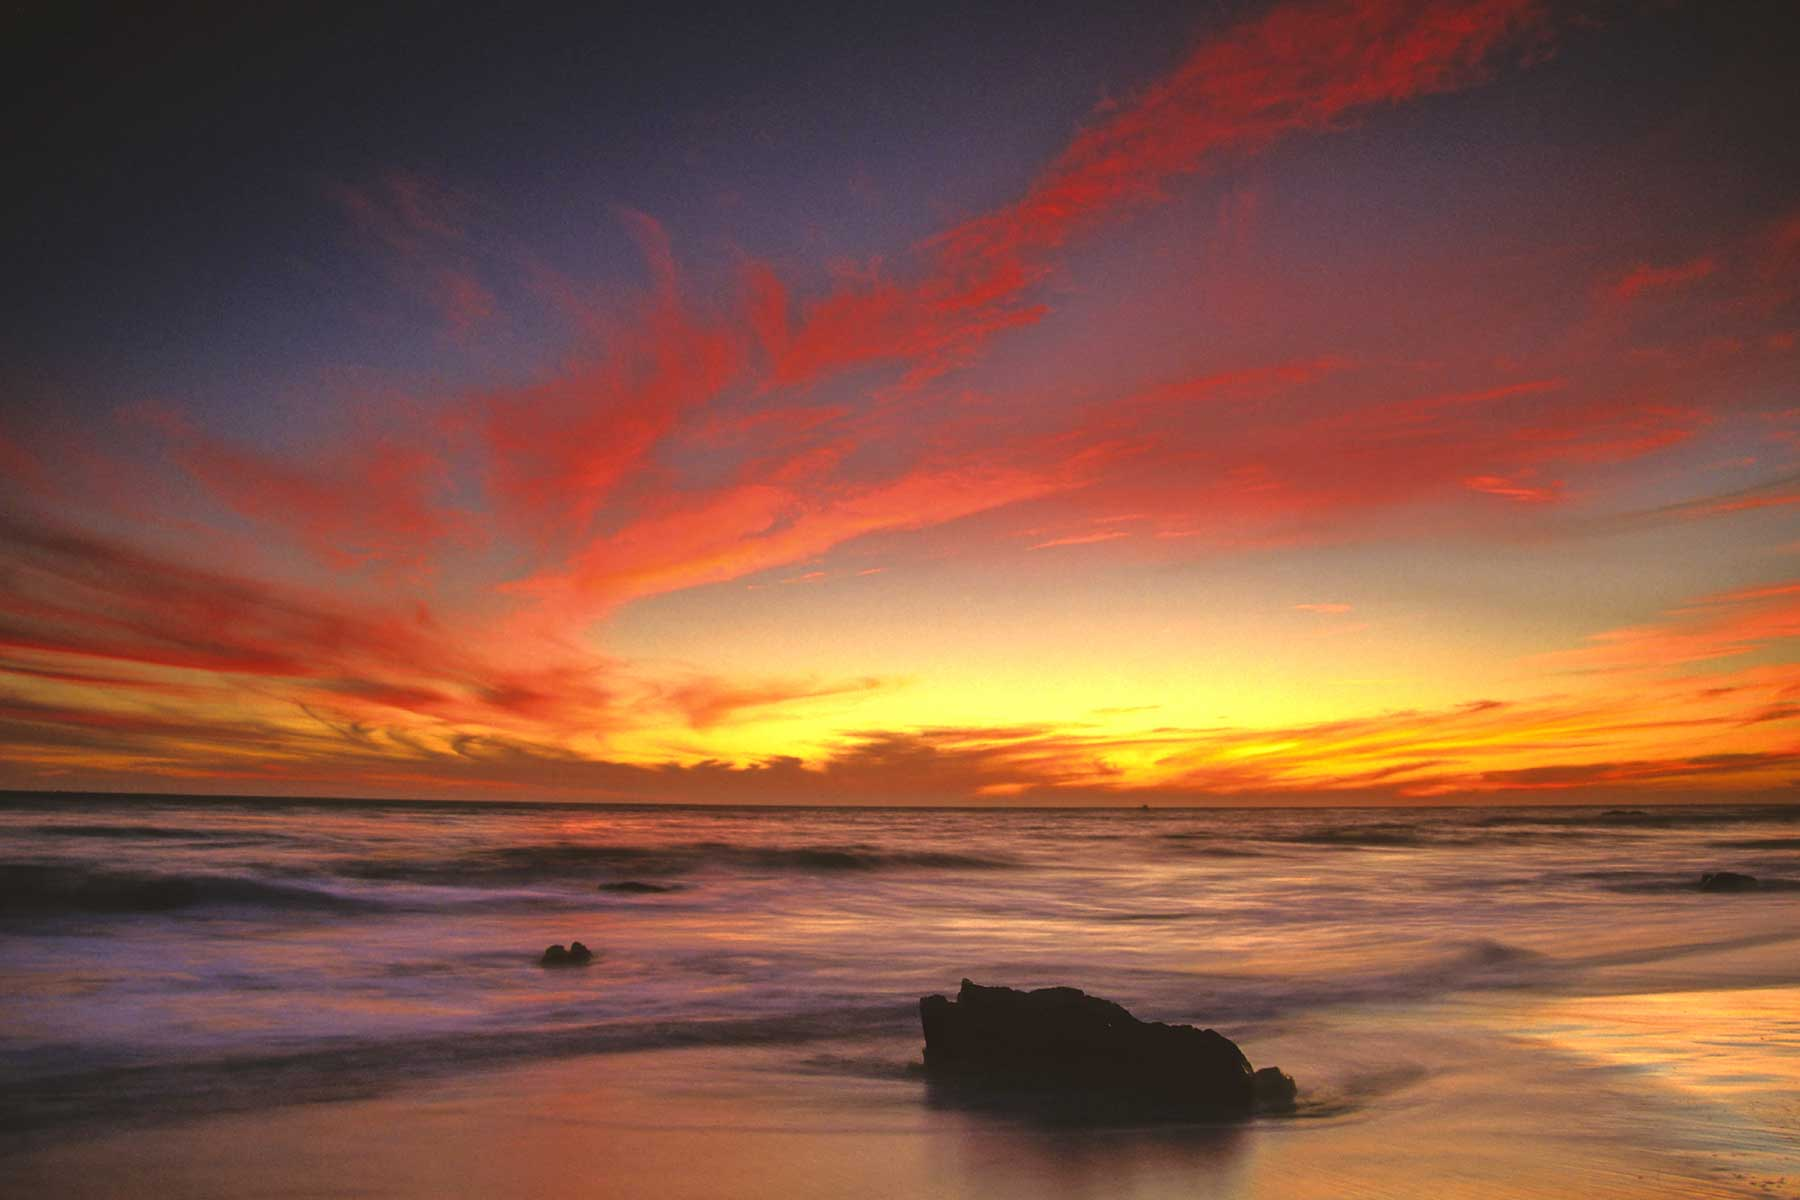 Colourful orange, yellow and purple sunset in the Pacific Ocean, Malibu